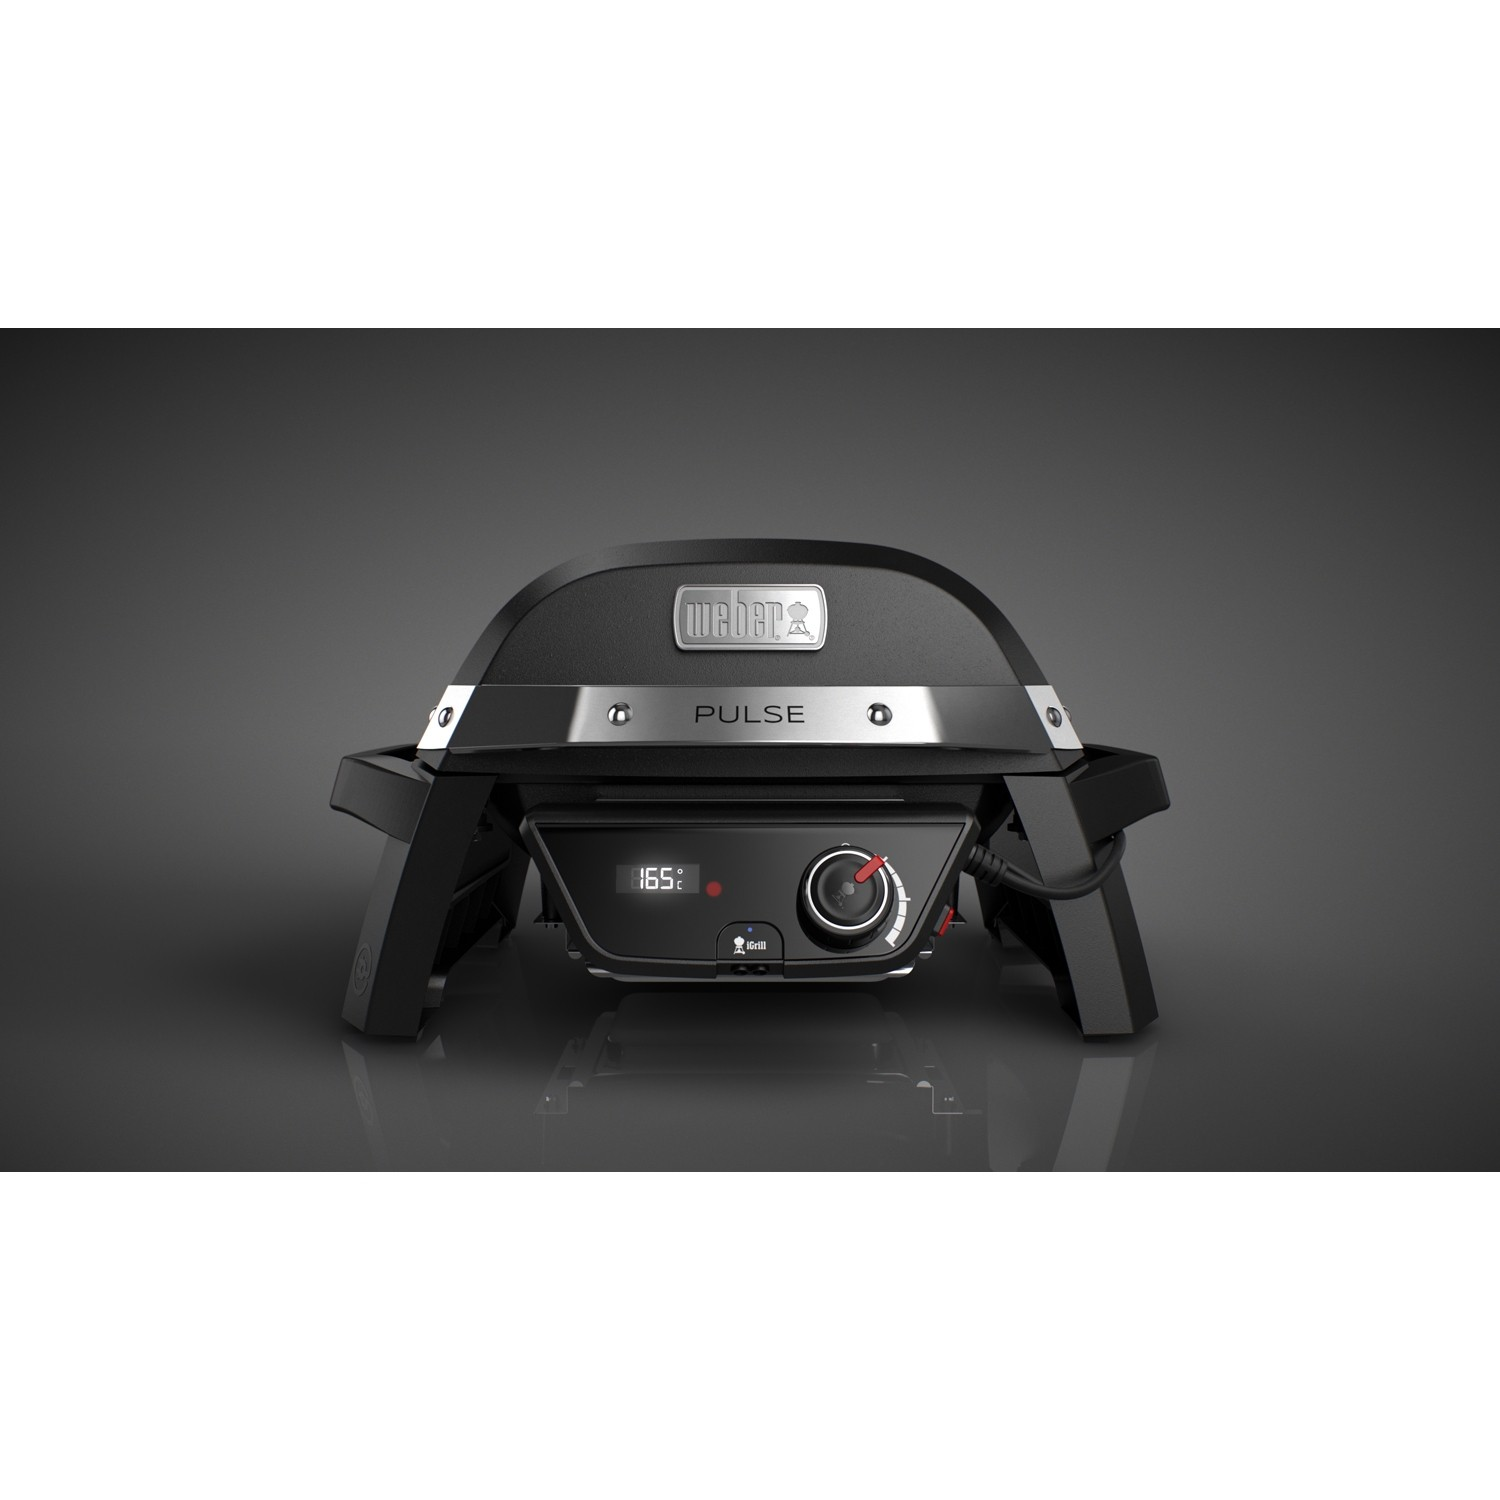 Weber Pulse 1000 Electric Barbecue, Black